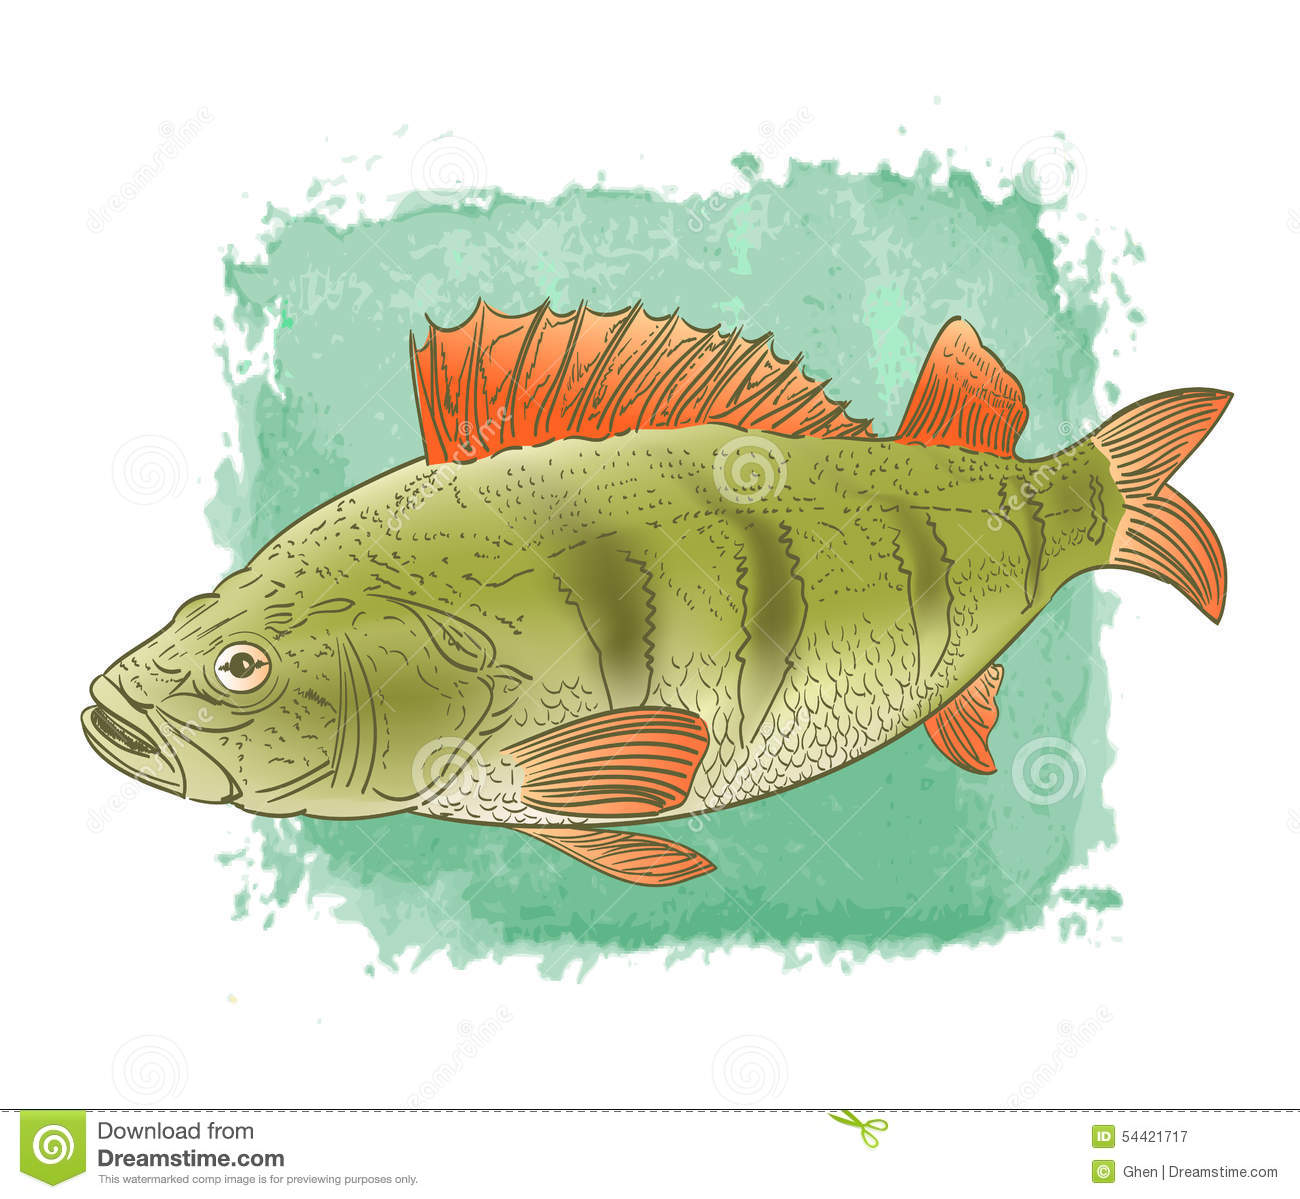 Freshwater Fish Color Drawing Stock Vector - Illustration of ...